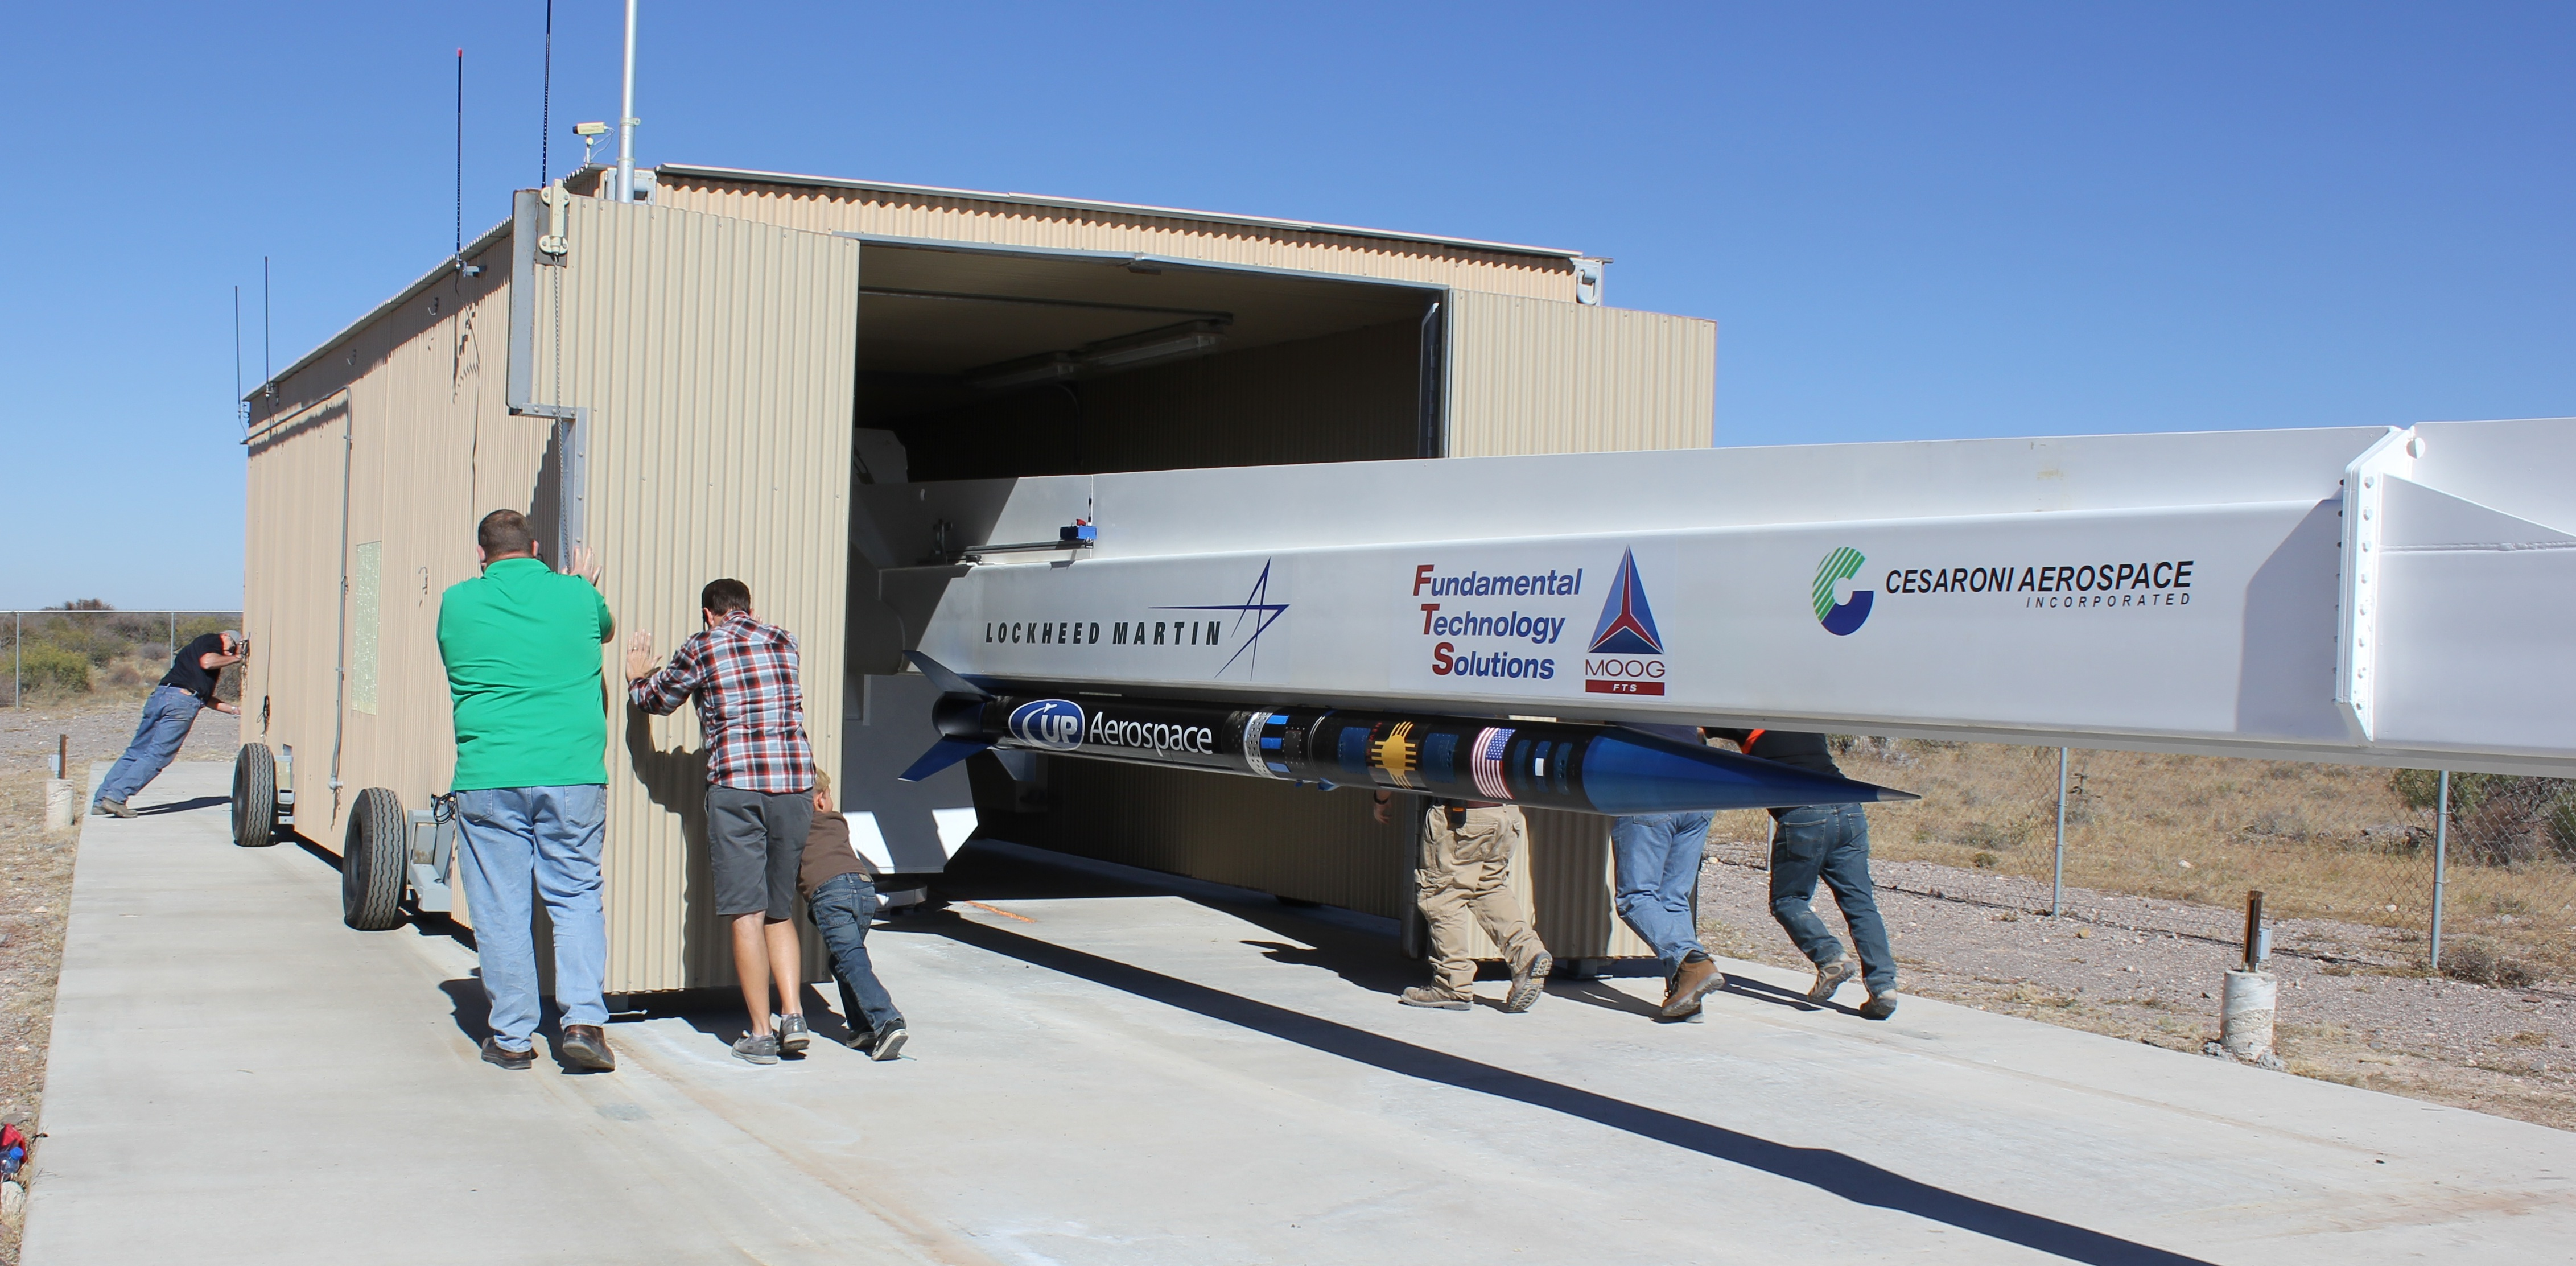 Members of the UP Aerospace ground grew roll back the moveable garage and payload integration facility to expose the launcher with the SL-8 sounding rocket mounted underneath. (NASA / Paul De Leon)